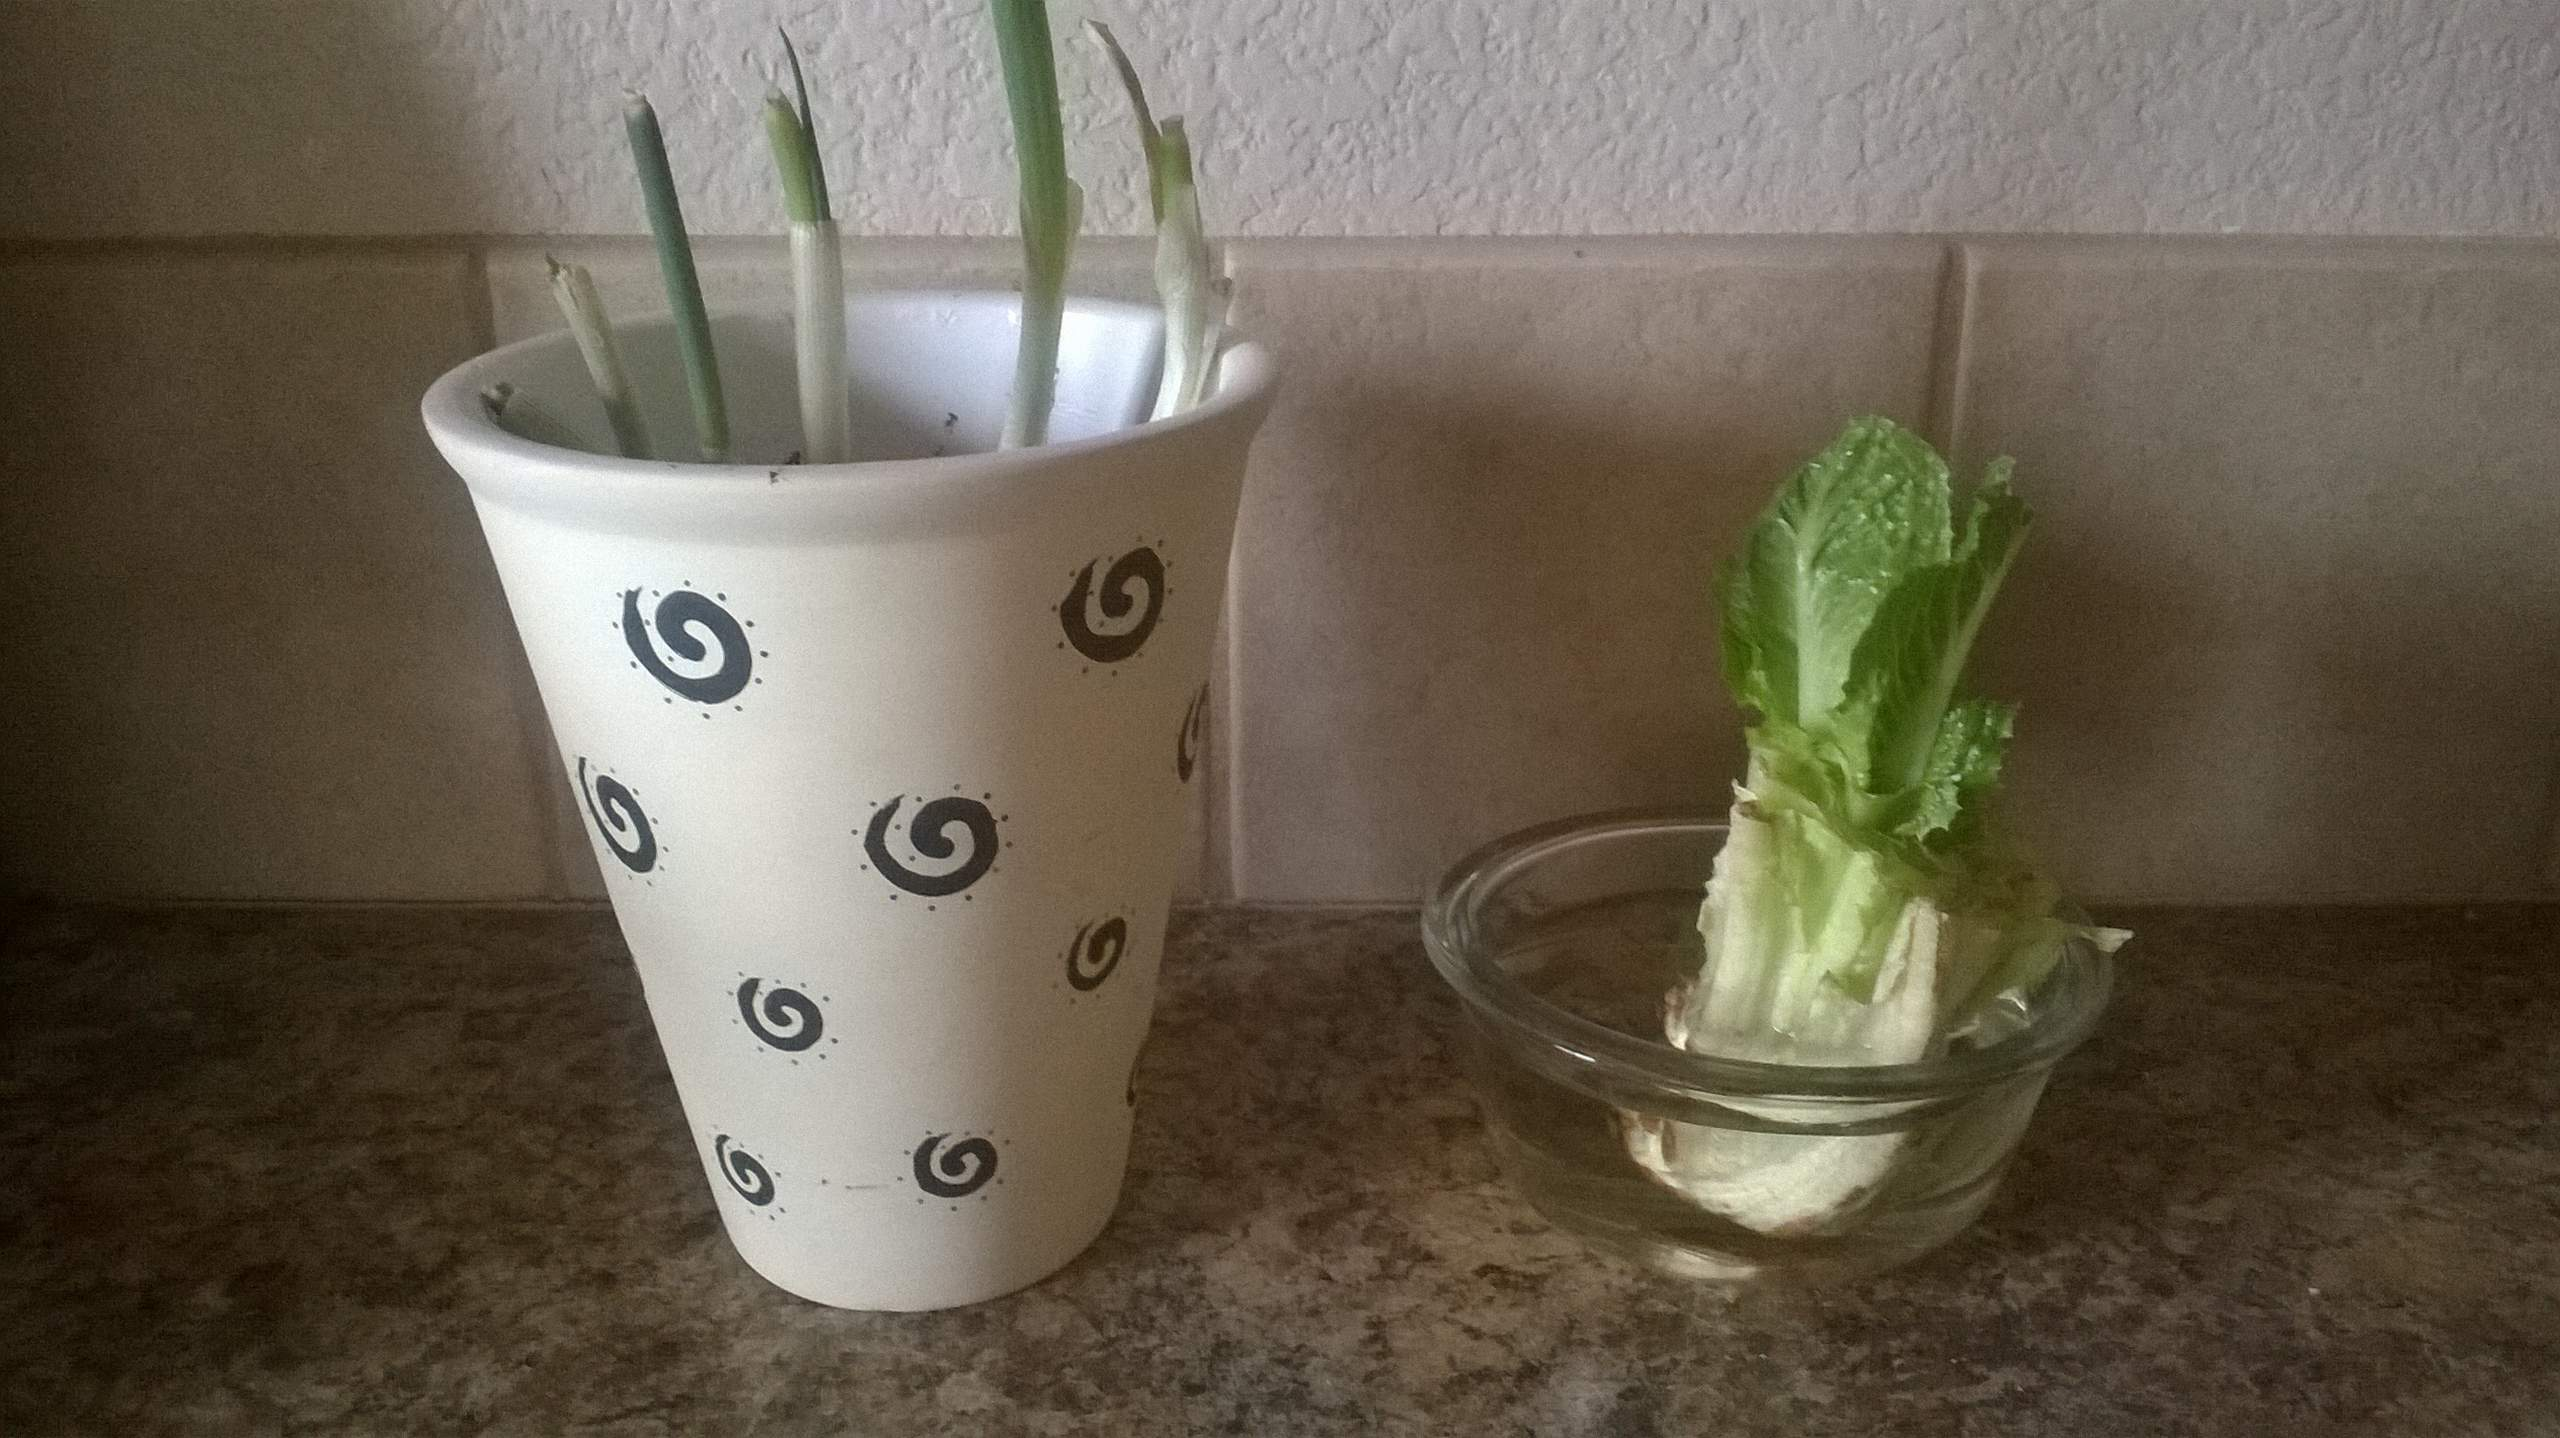 Regrowing green onions and romaine lettuce is as simple as plopping their bases (after eating their tops) in water.  Dirt can optionally be used for the green onions.